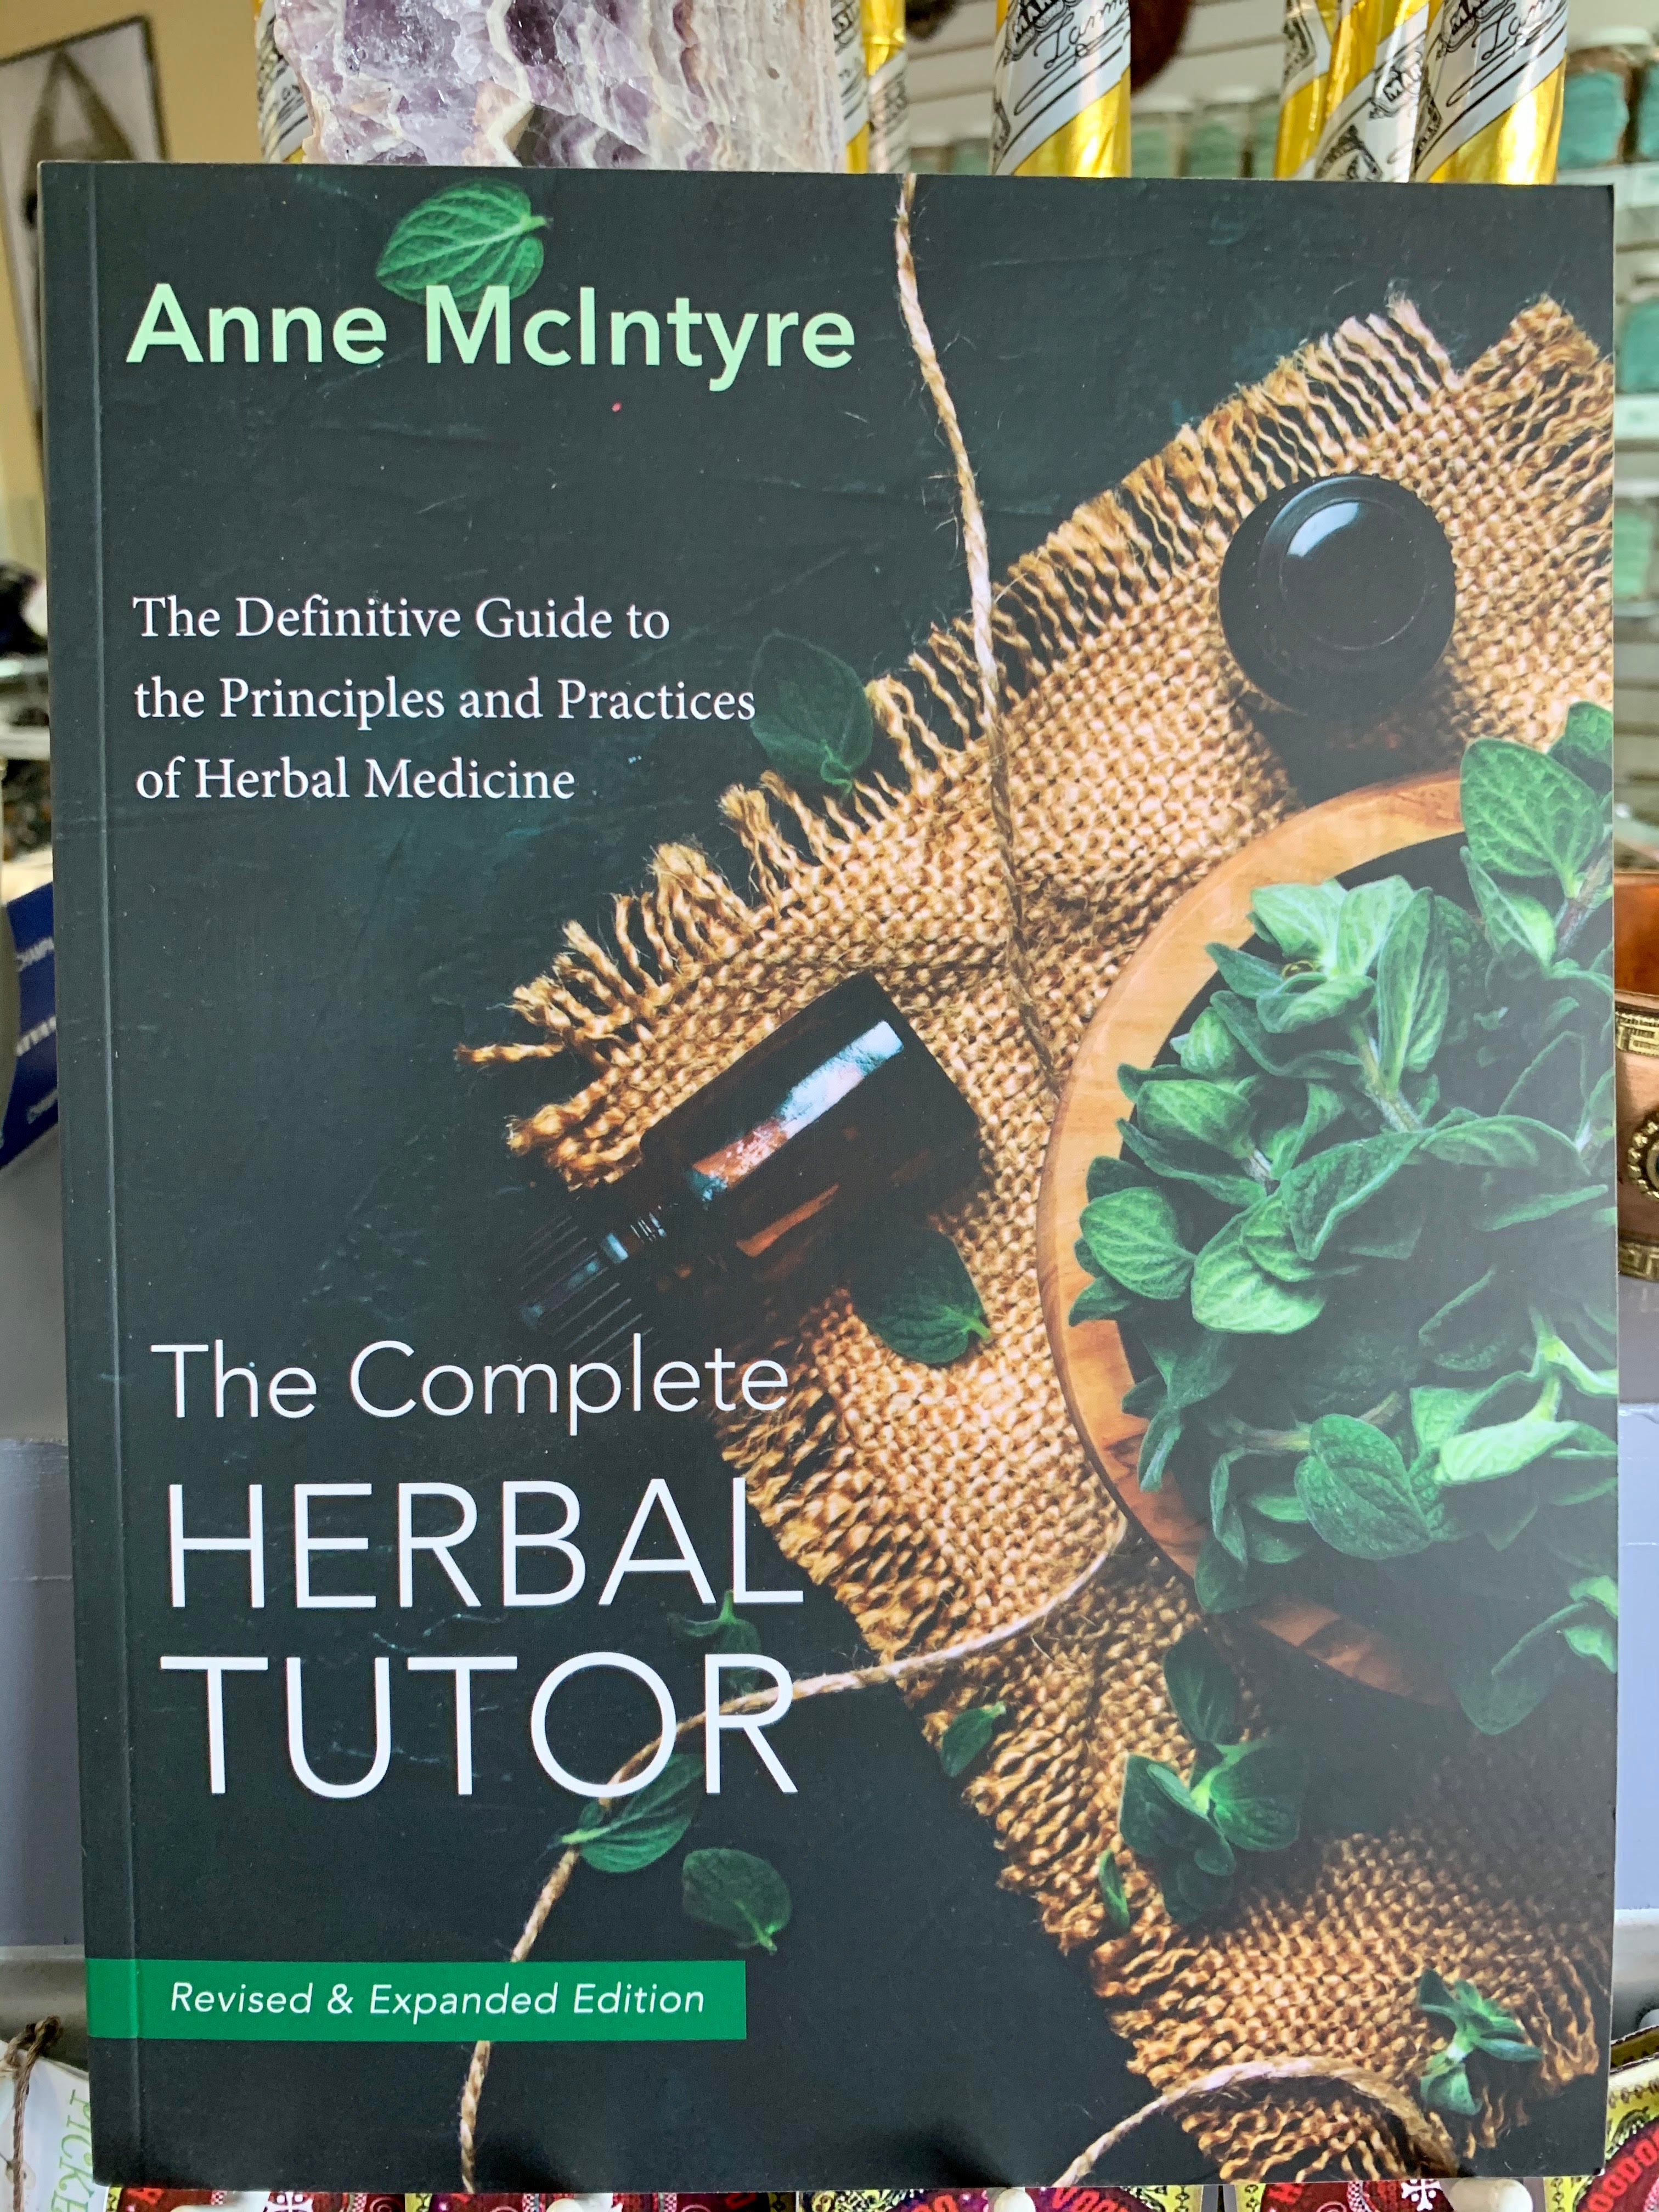 The Complete Herbal Tutor - Anne McIntyre